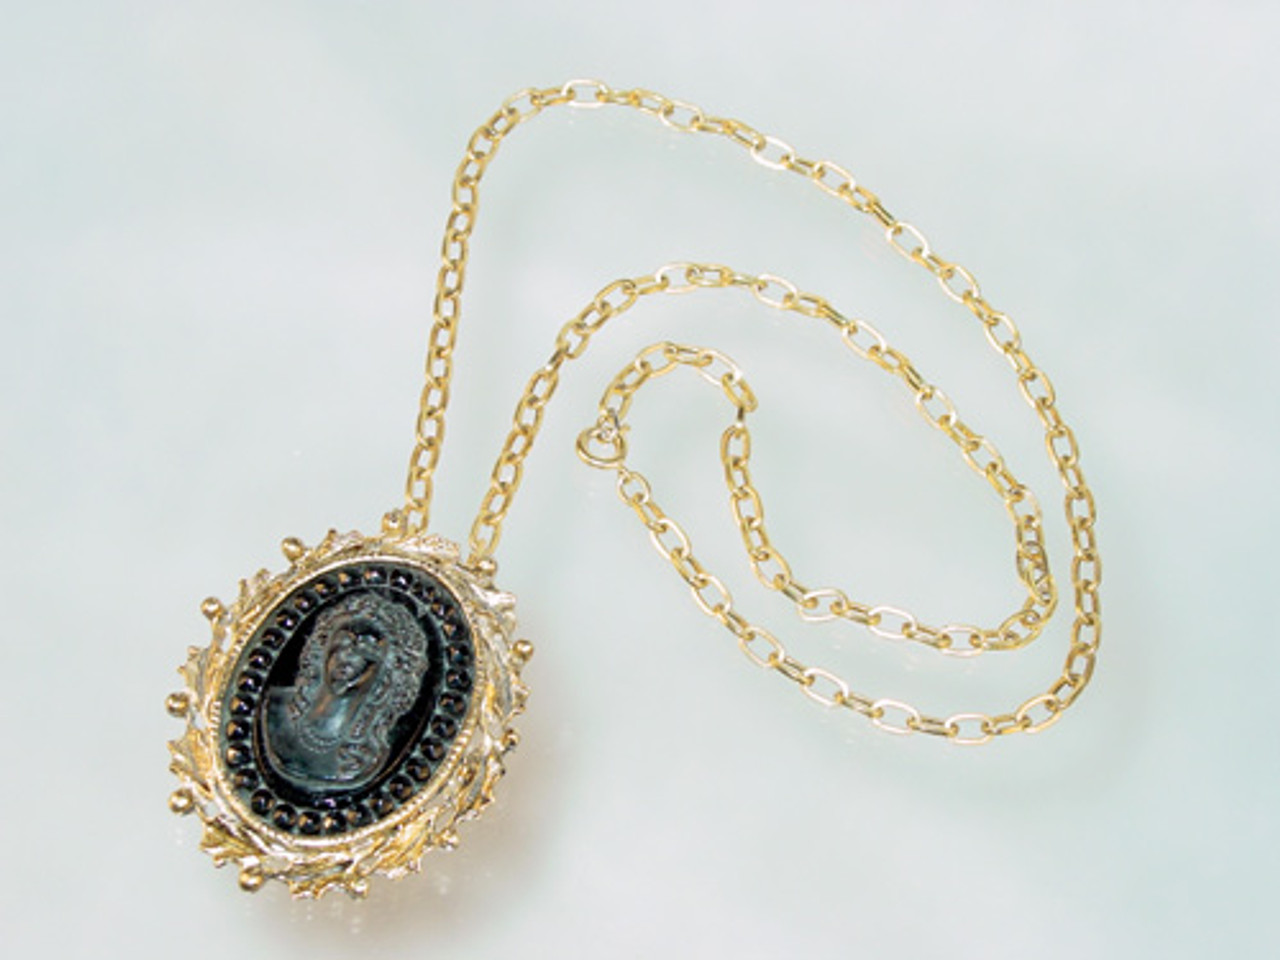 Long necklace with glass cameo